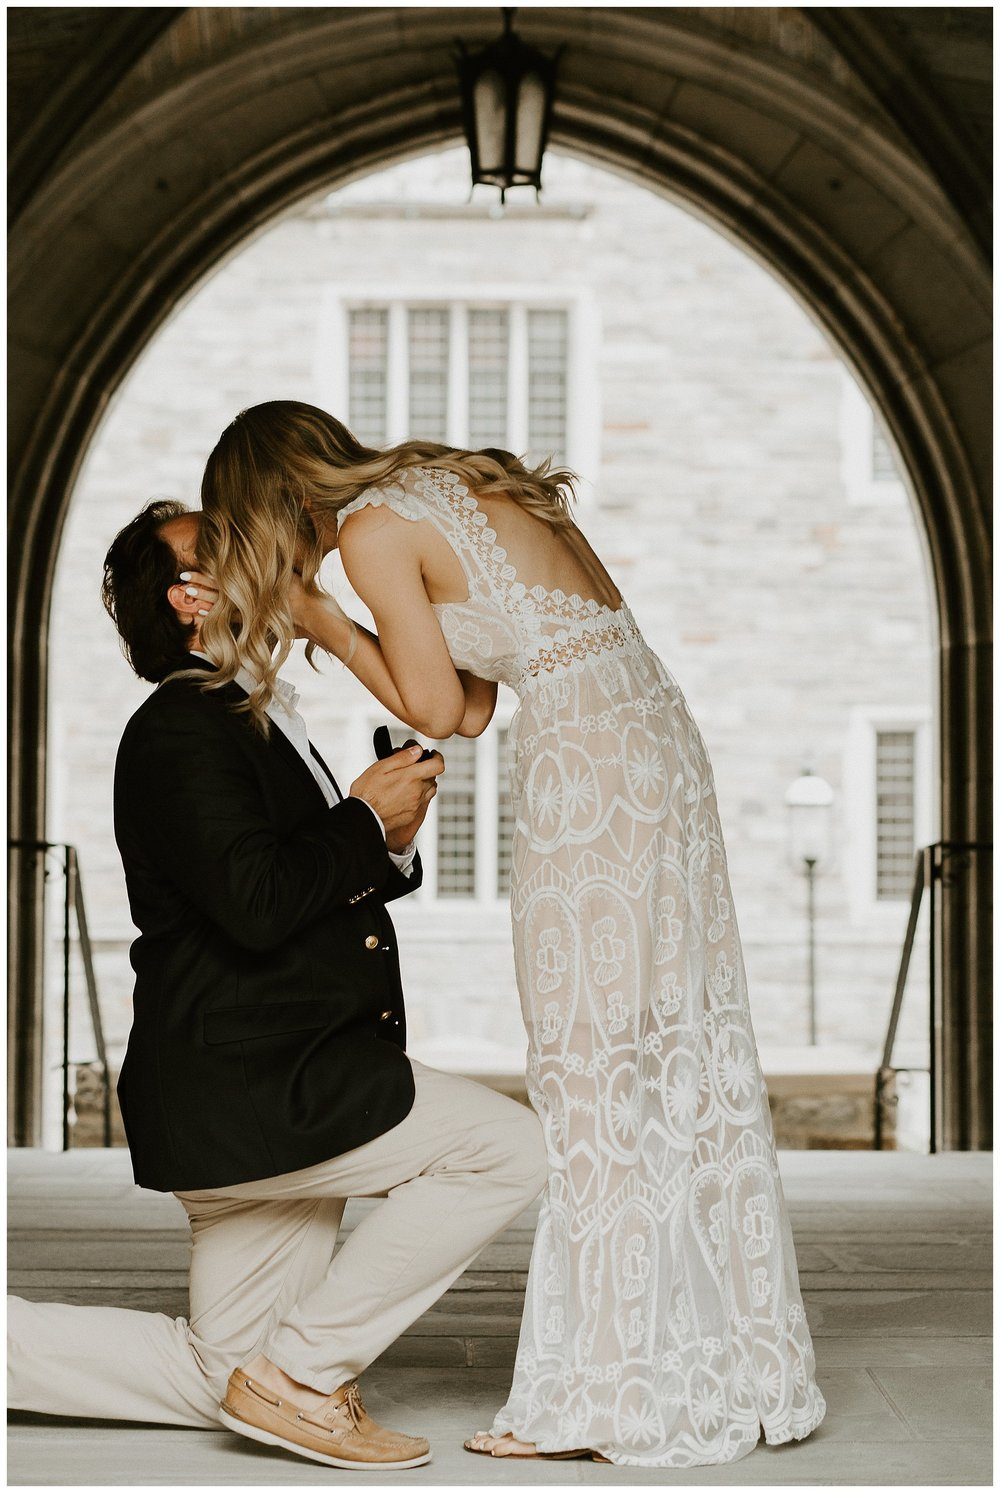 Allison and Yiannis Engagement - Blog Feature 4.jpg